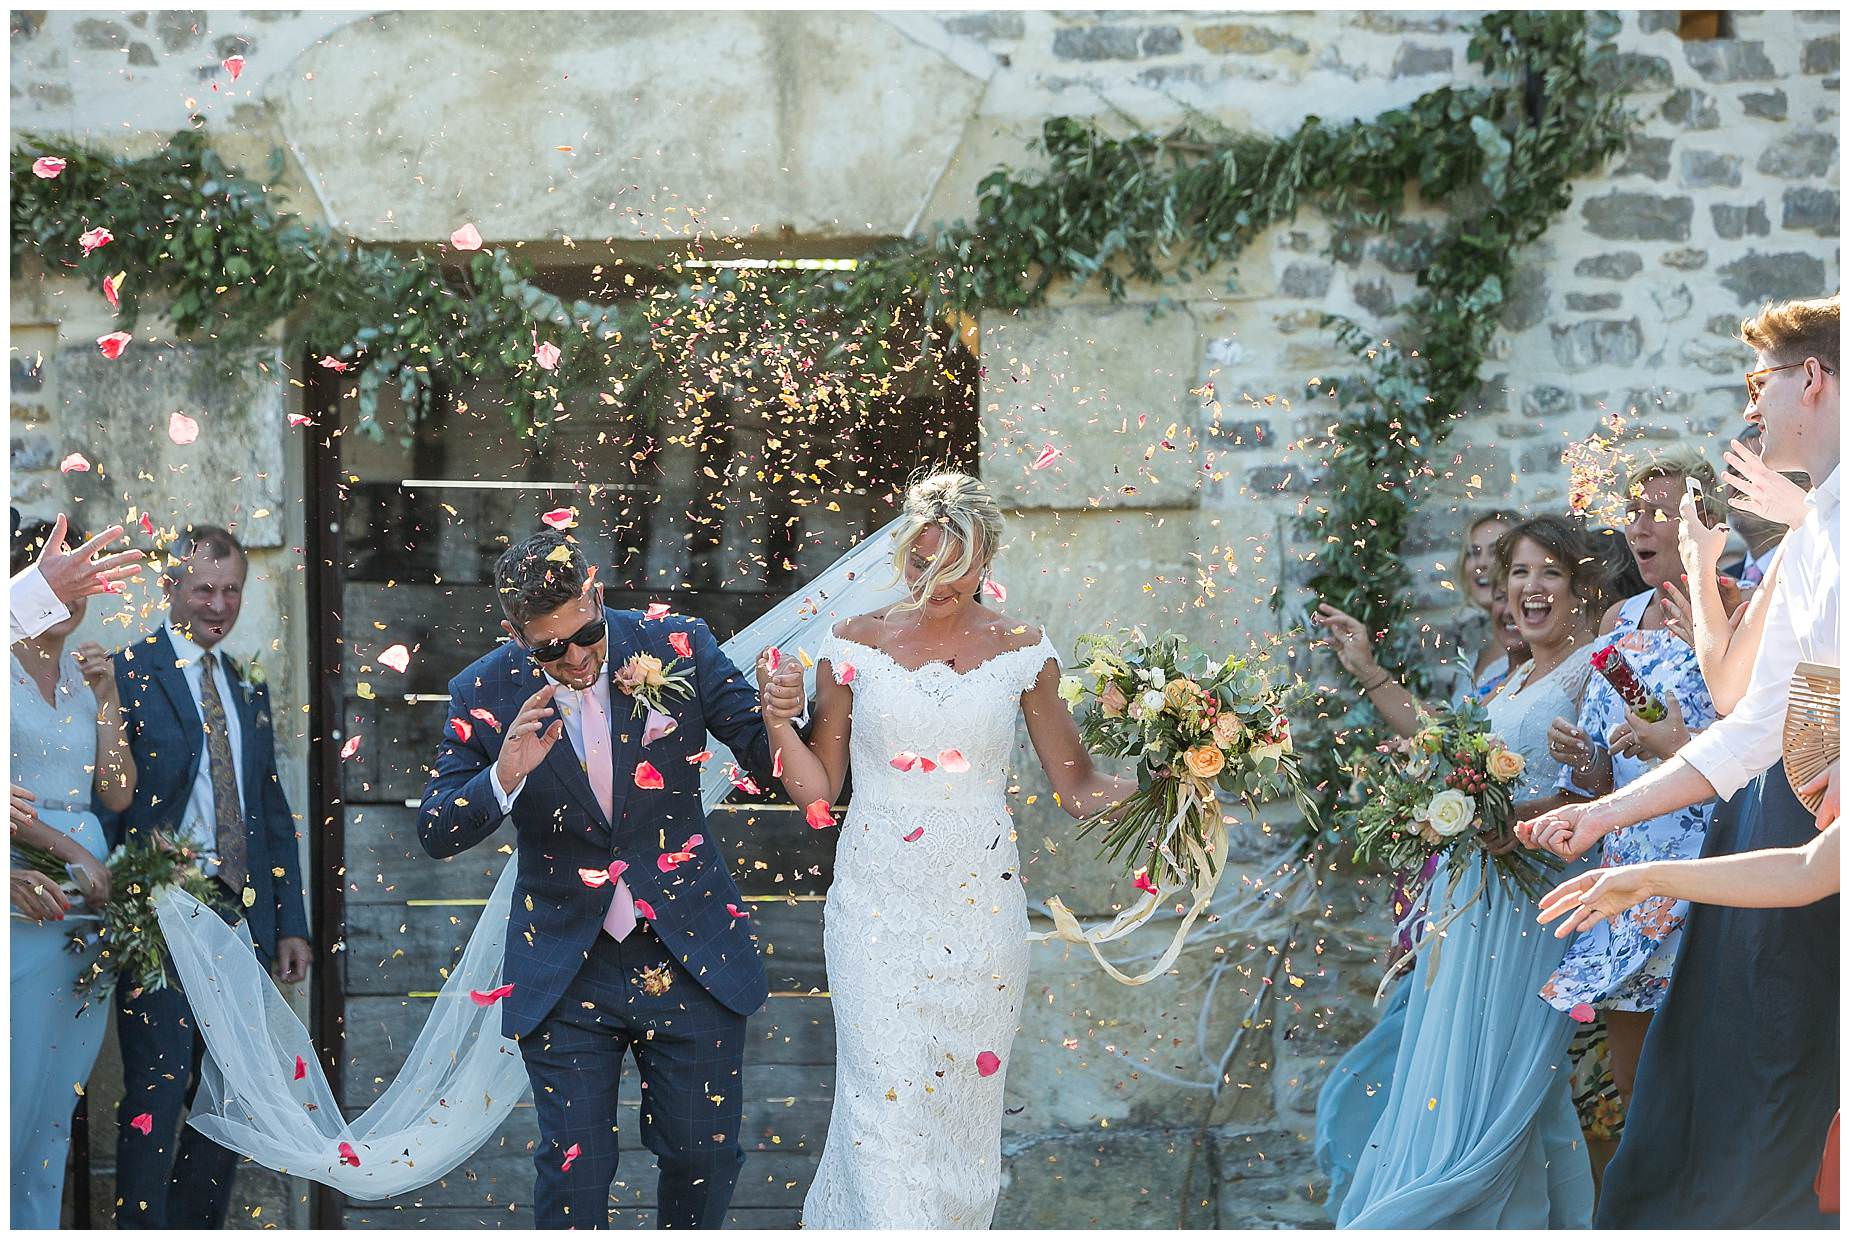 Domaine Saint Germain wedding confetti